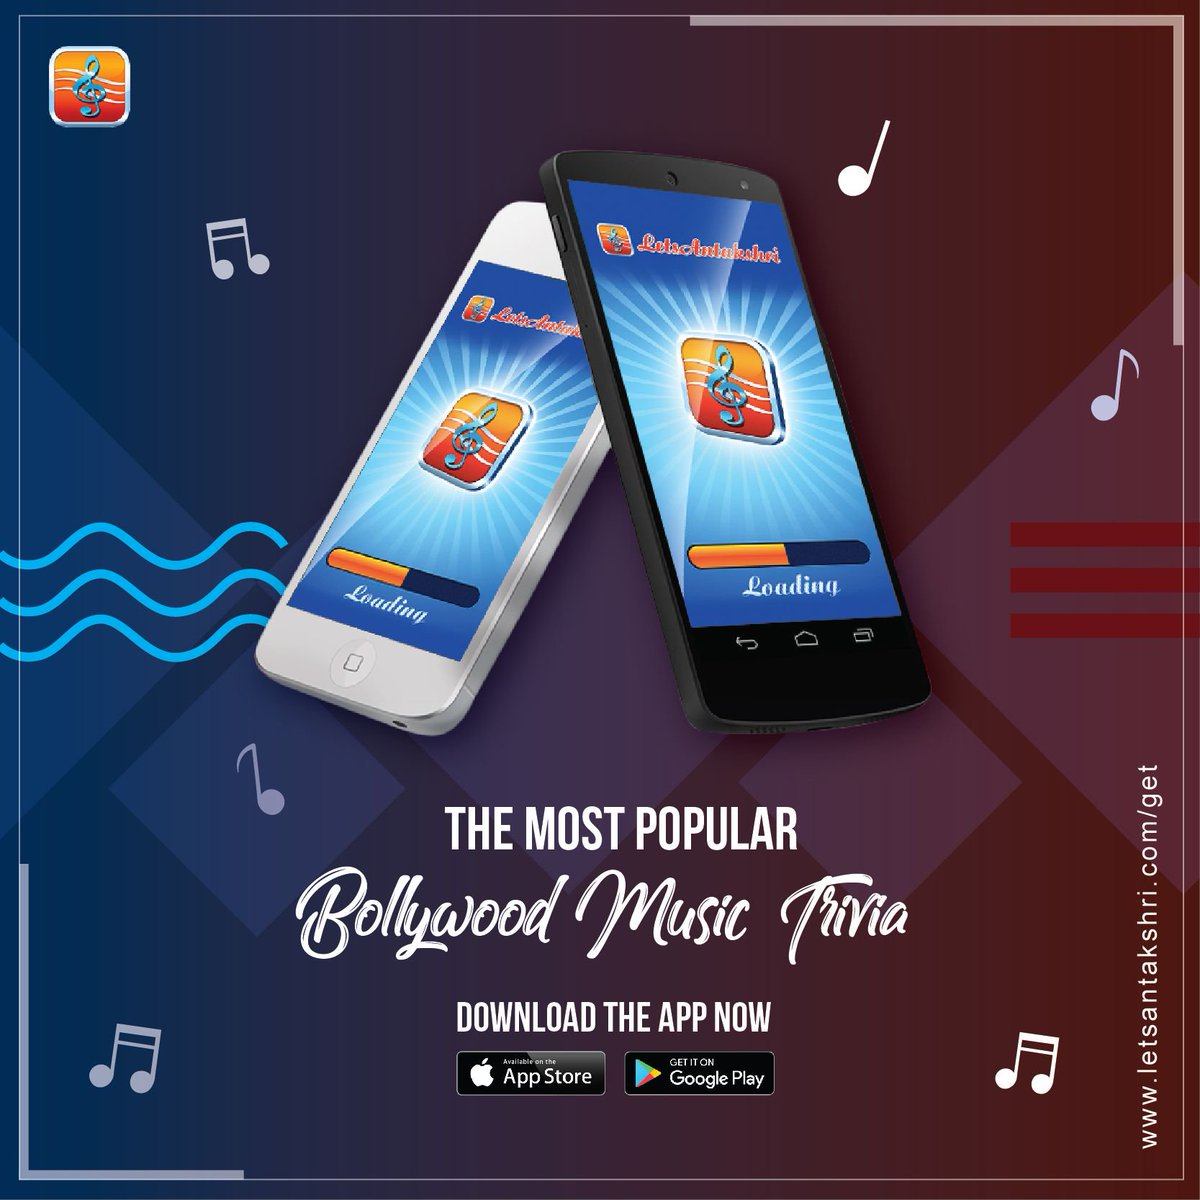 Bollywood music app download